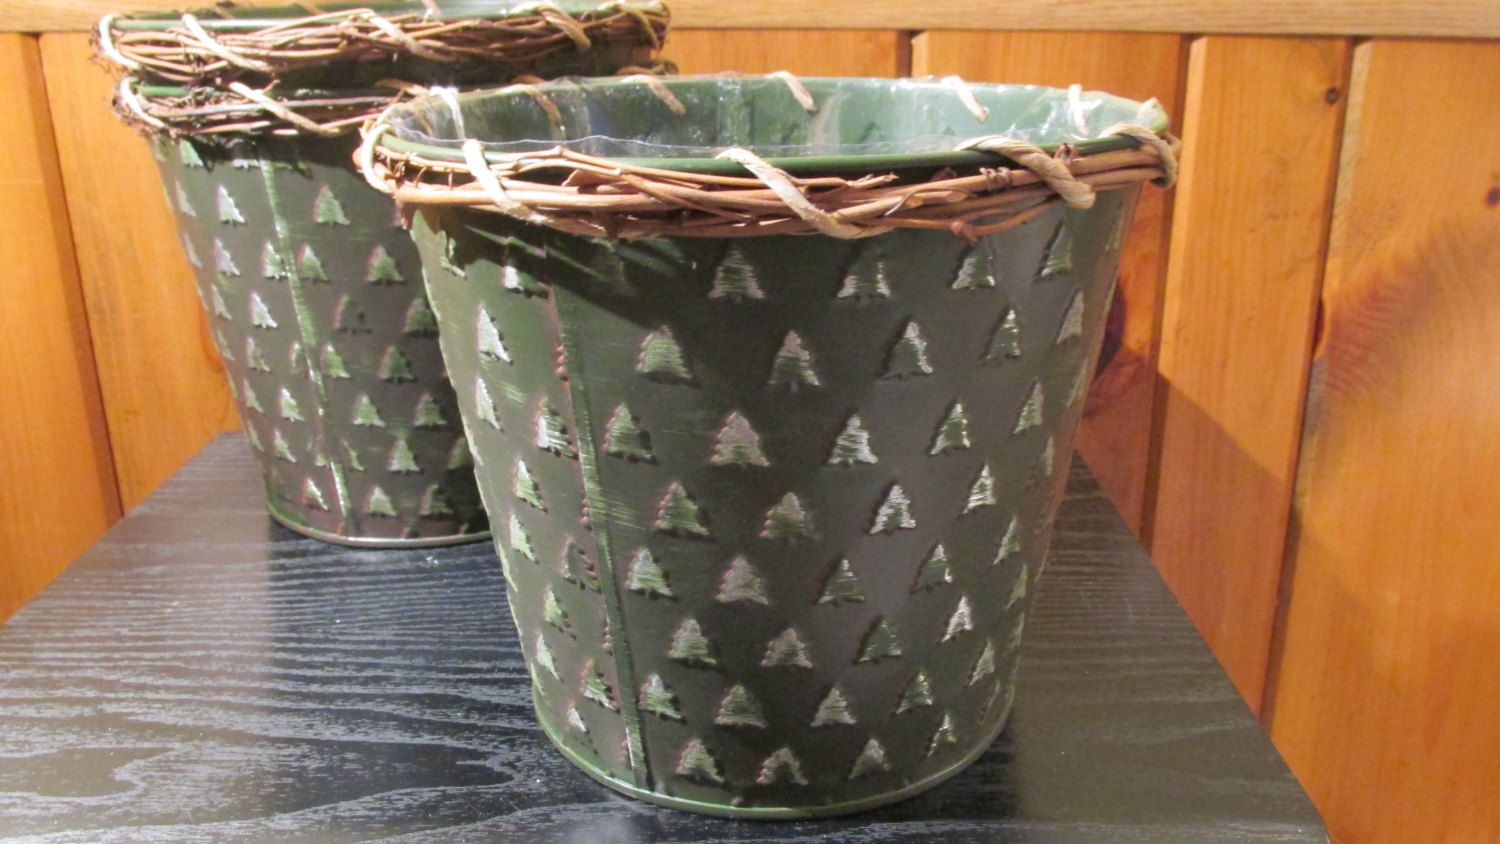 Tin Bucket Pail Planter with Christmas Tree Design by ChiChiBazaar on Etsy